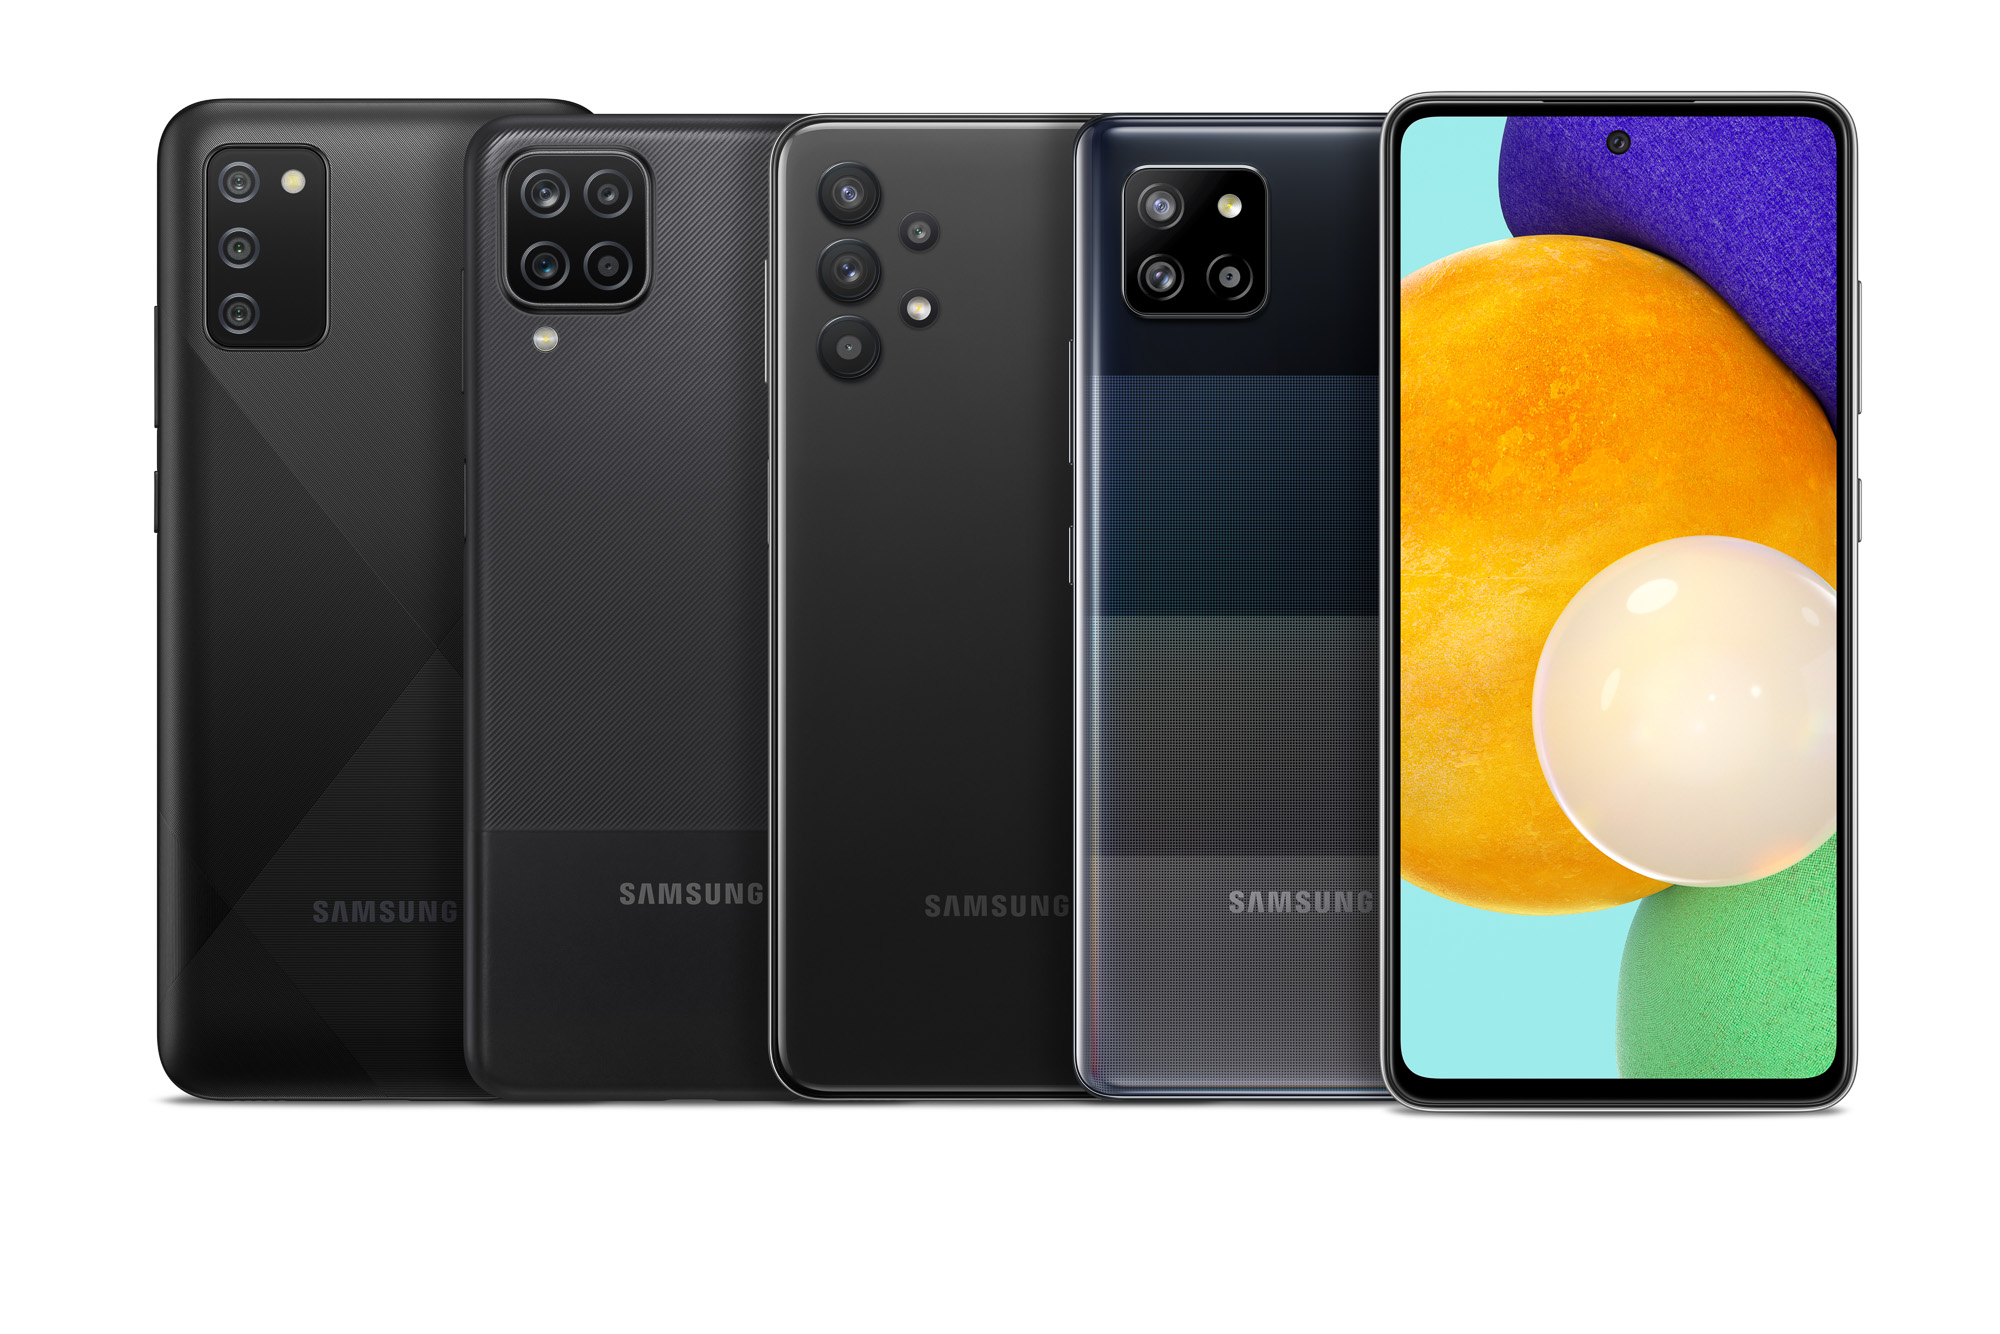 Samsung's Brings 5G To The Affordable Smartphone Market With New A Series